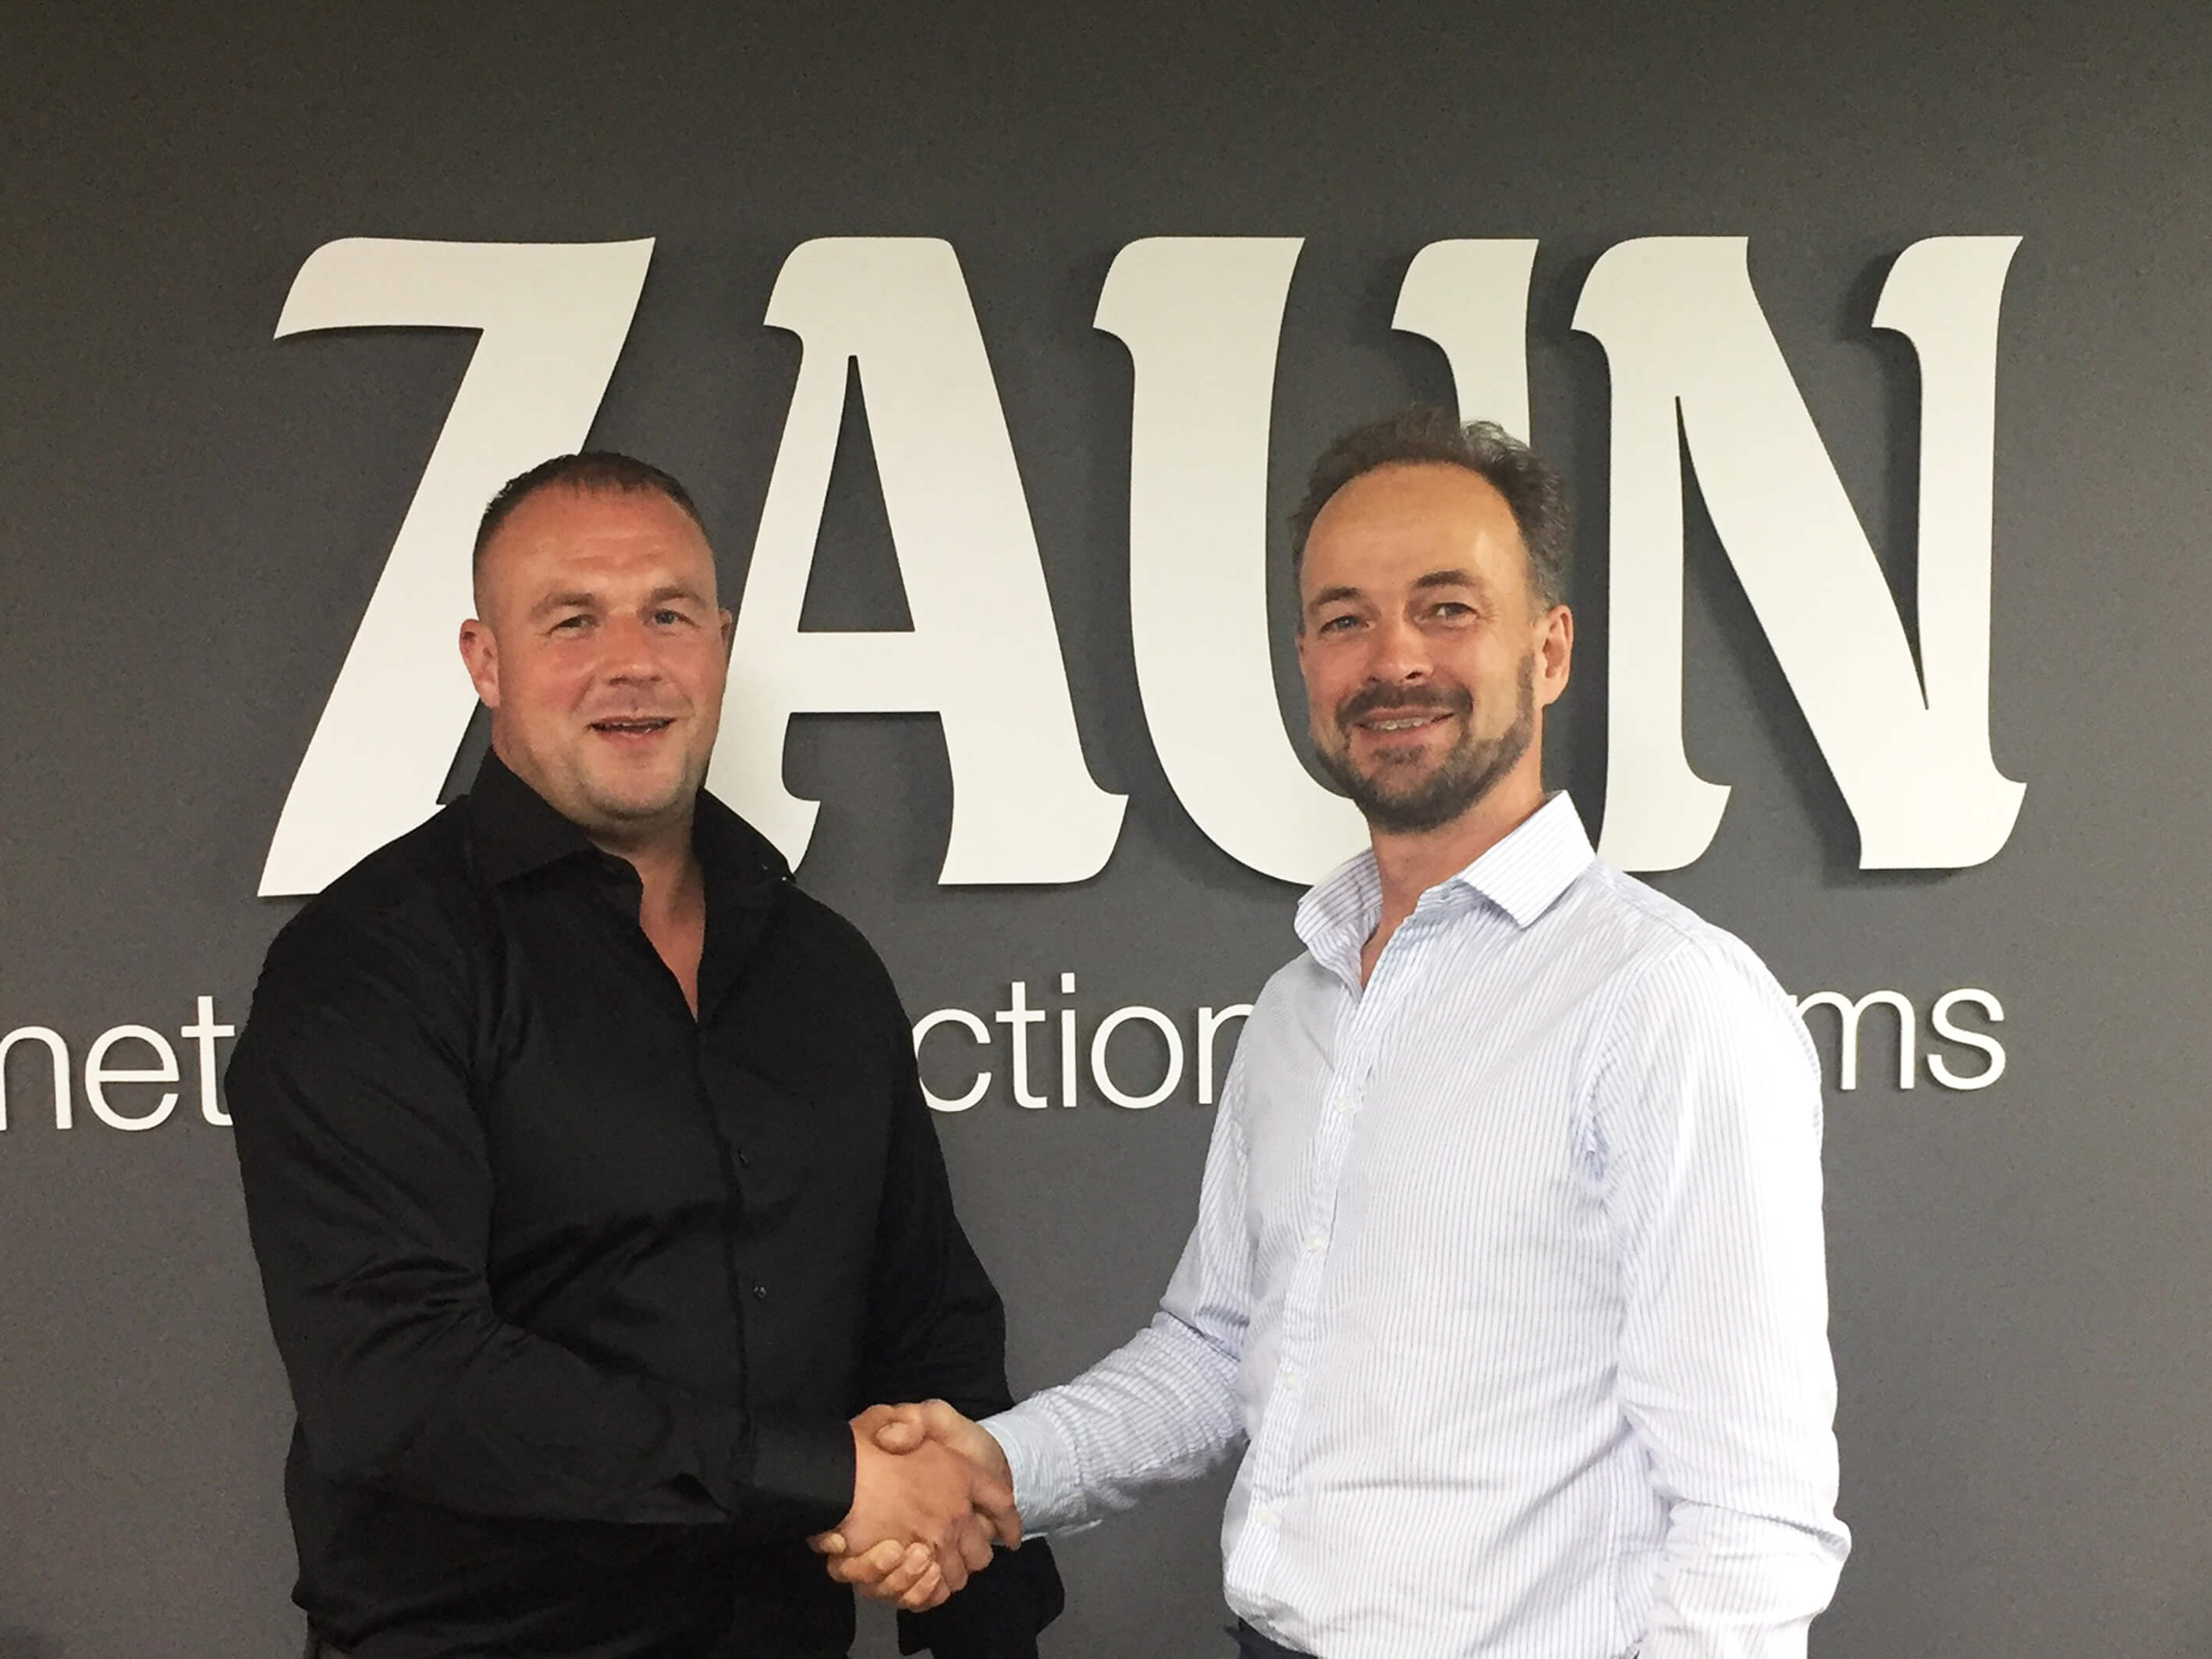 LtoR Fastline's Mike Fellows and Zaun co-founder and owner Alastair Henman